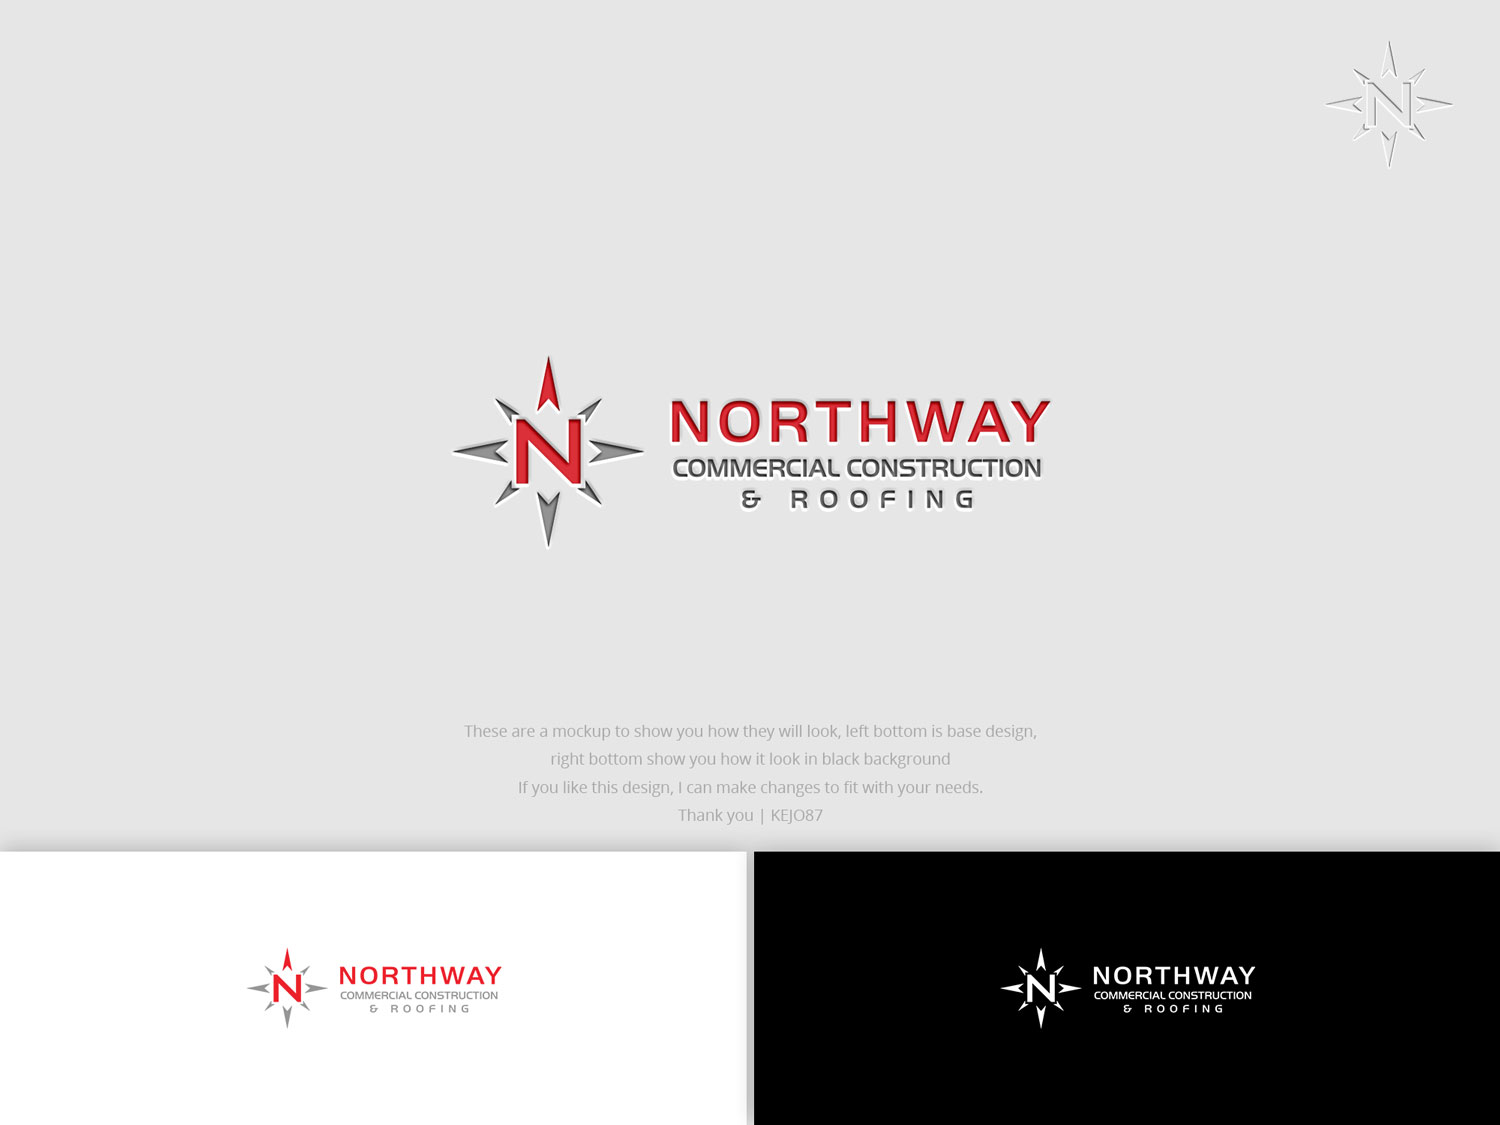 Bold Modern Construction Company Logo Design For Northway